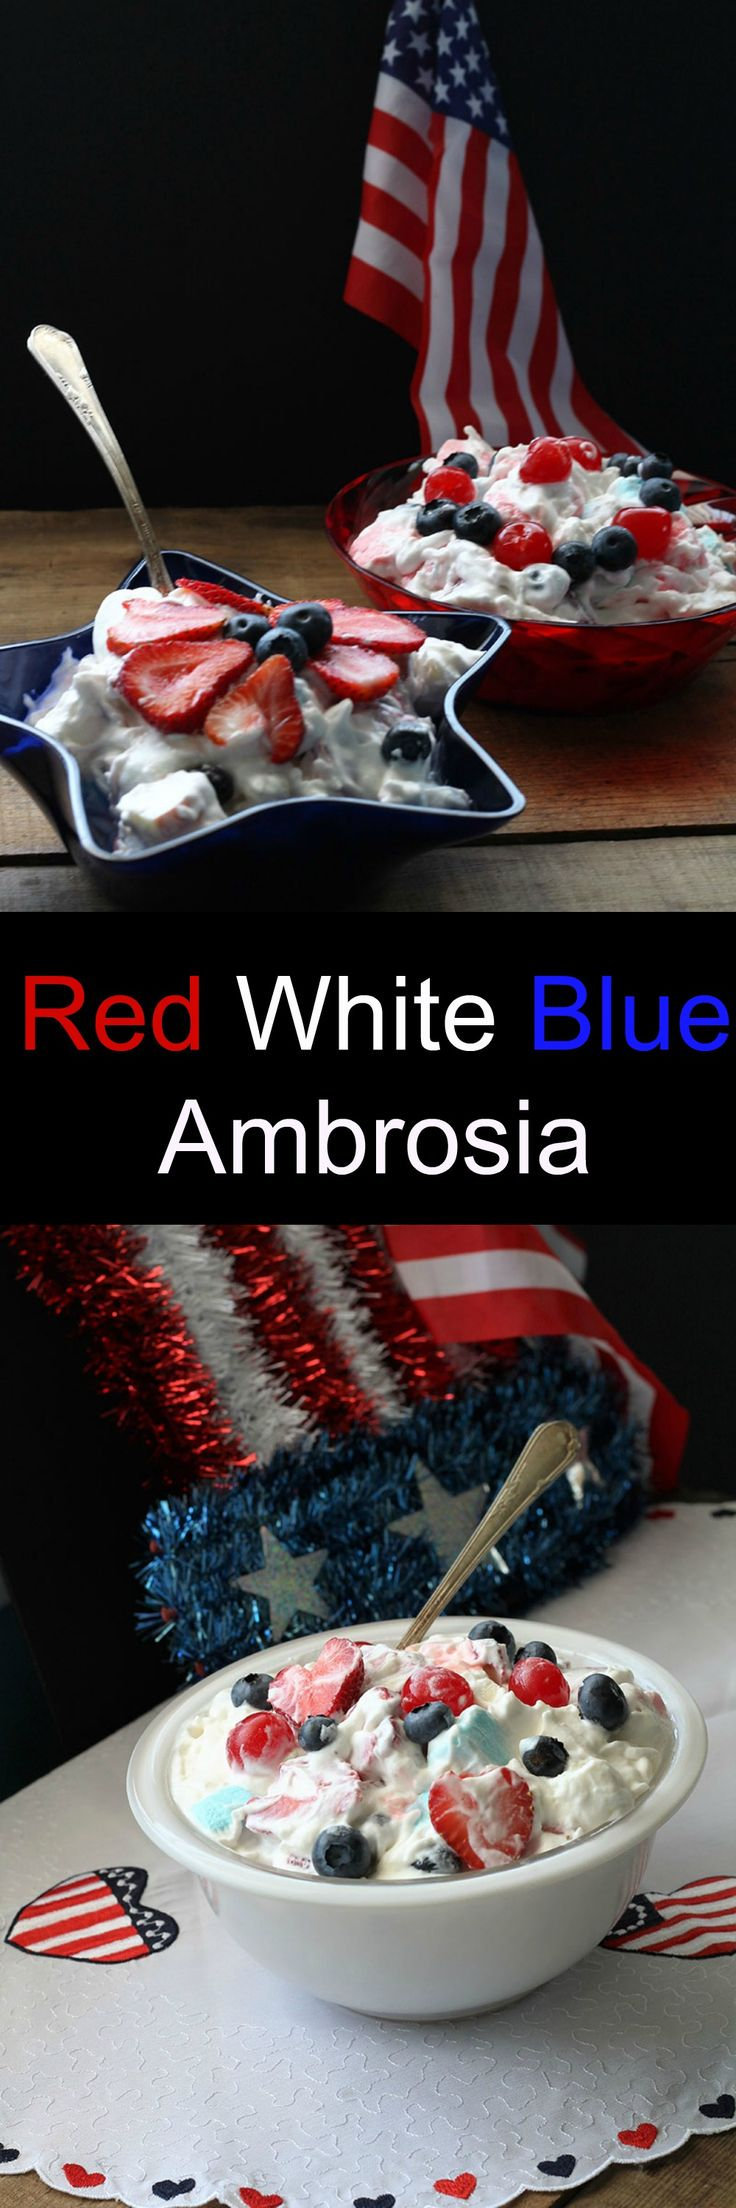 Red White and Blue Ambrosia